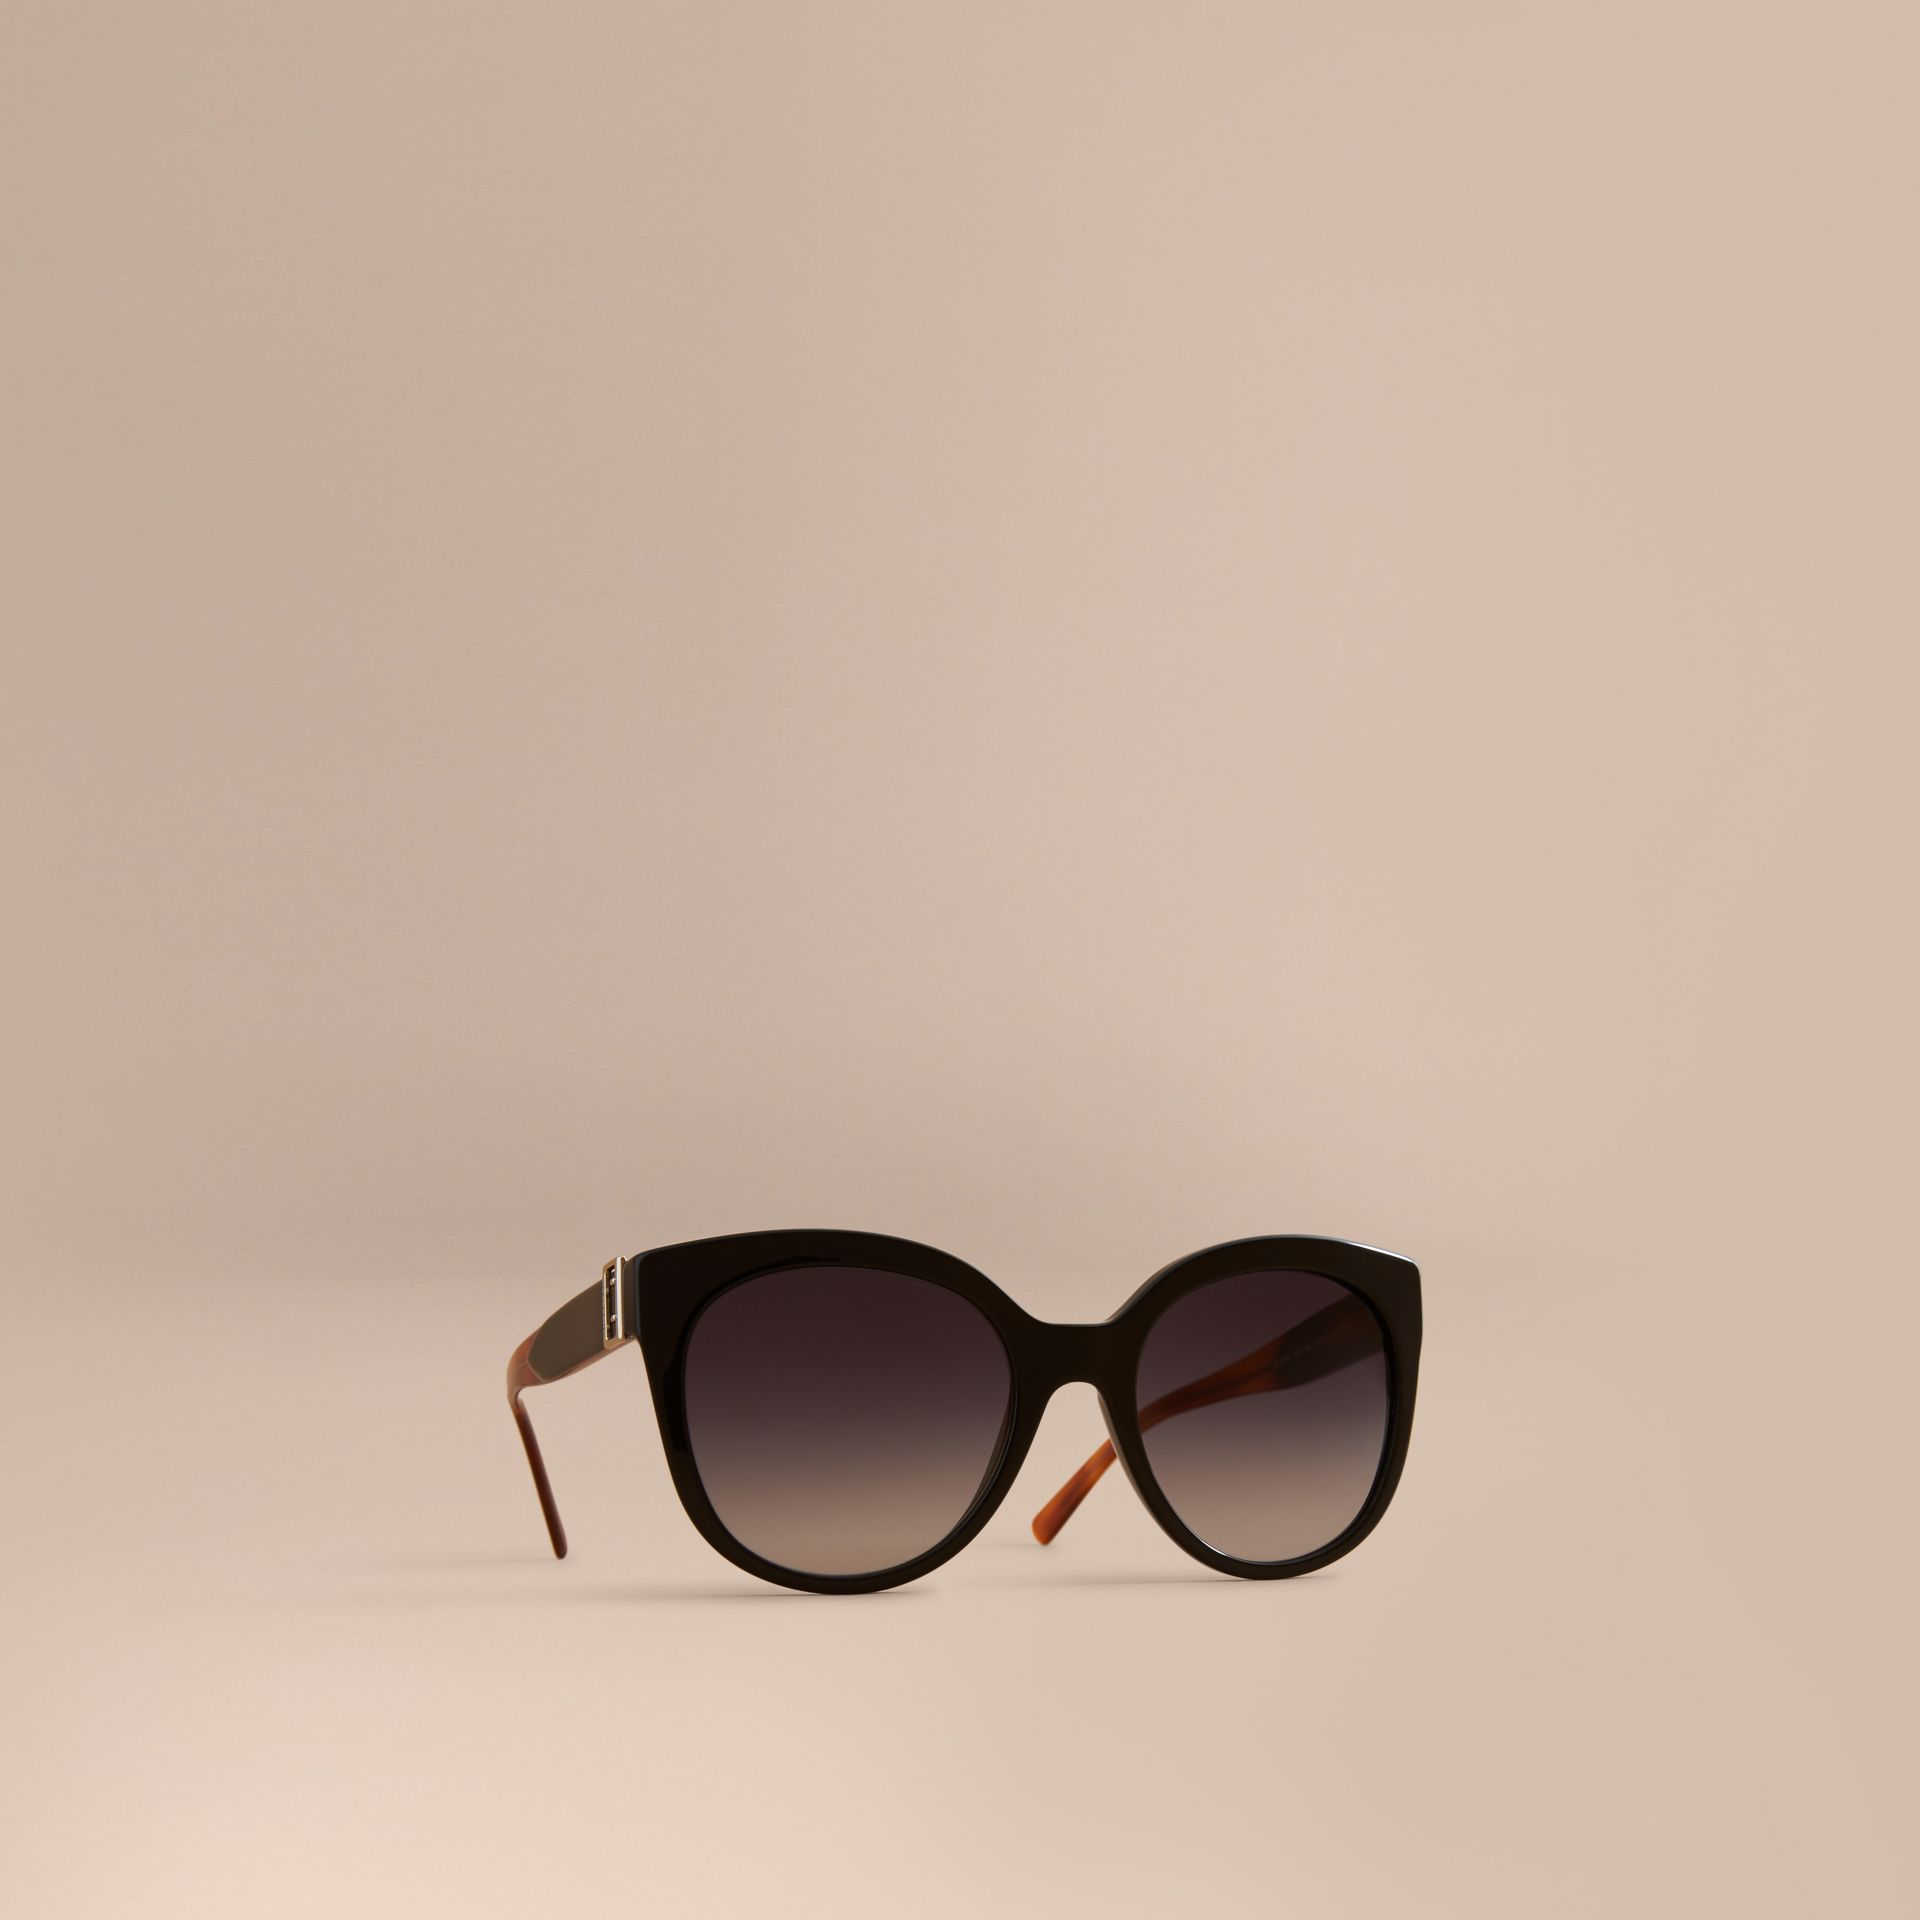 Buckle Detail Cat-eye Frame Sunglasses in Black - Women | Burberry Singapore - gallery image 0